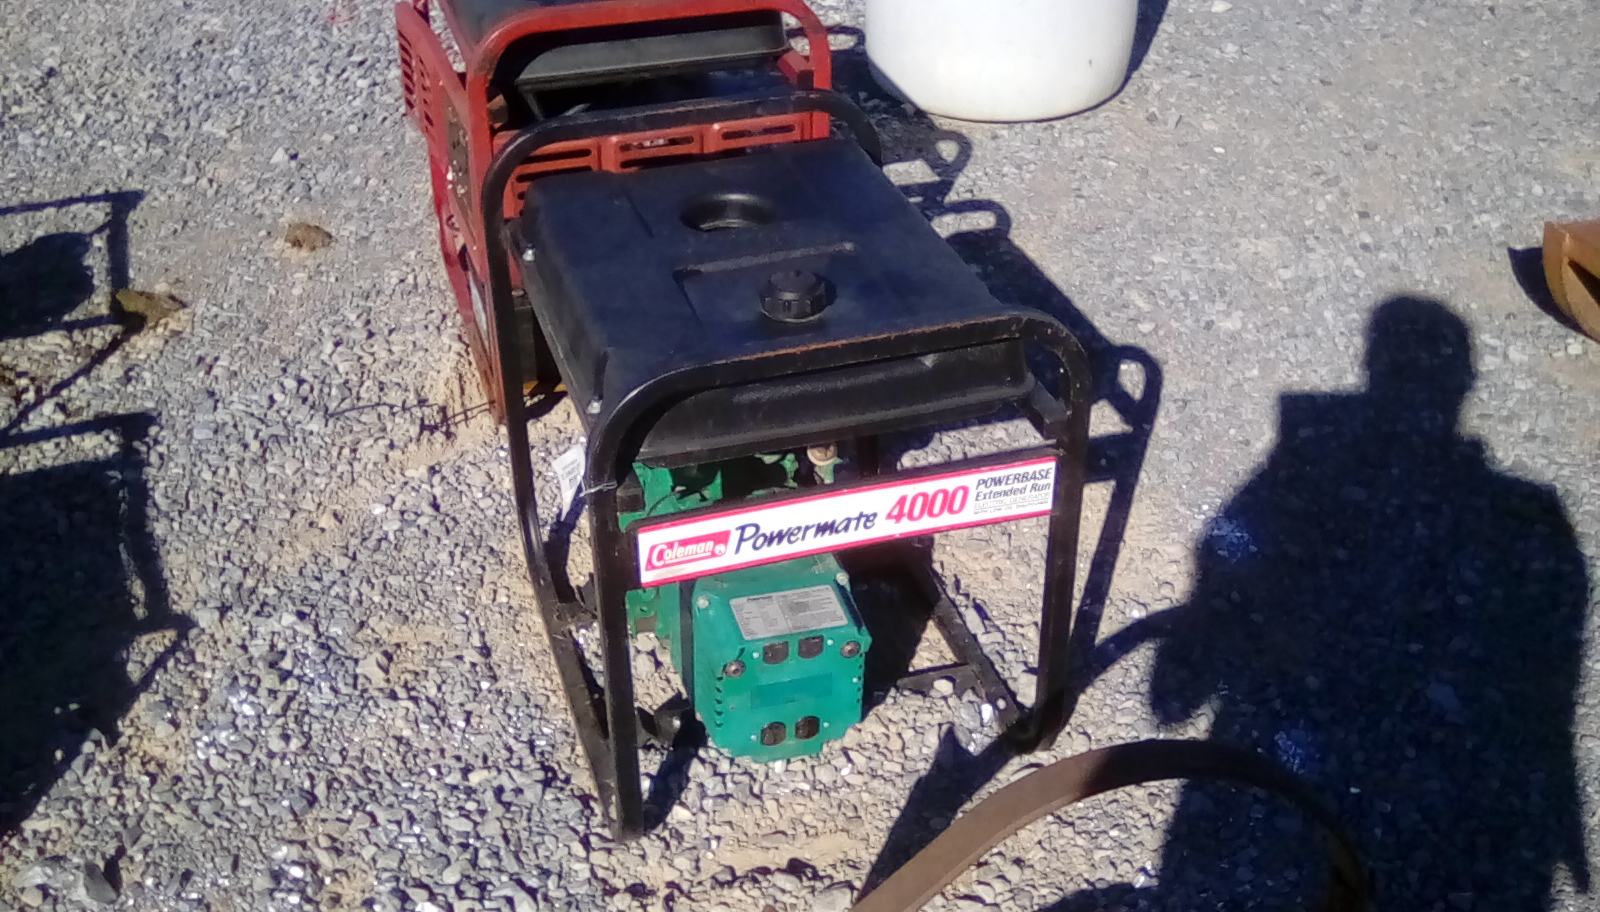 COLEMAN POWERMATE 4000 GAS POWERED GENERATOR Image